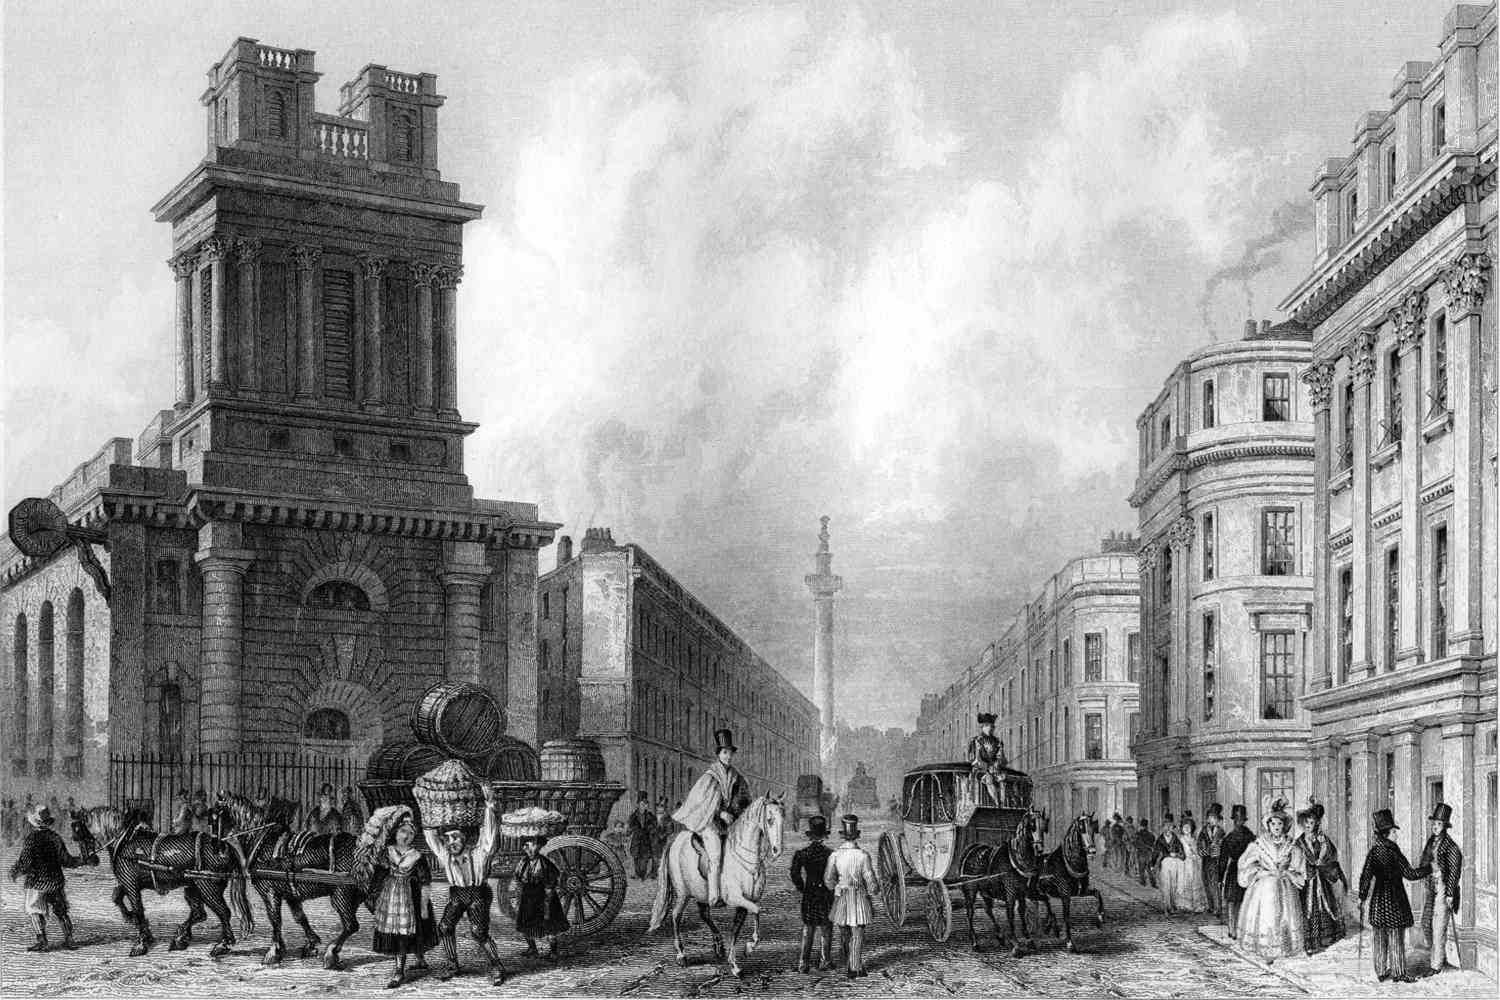 St. Mary Woolnoth, London